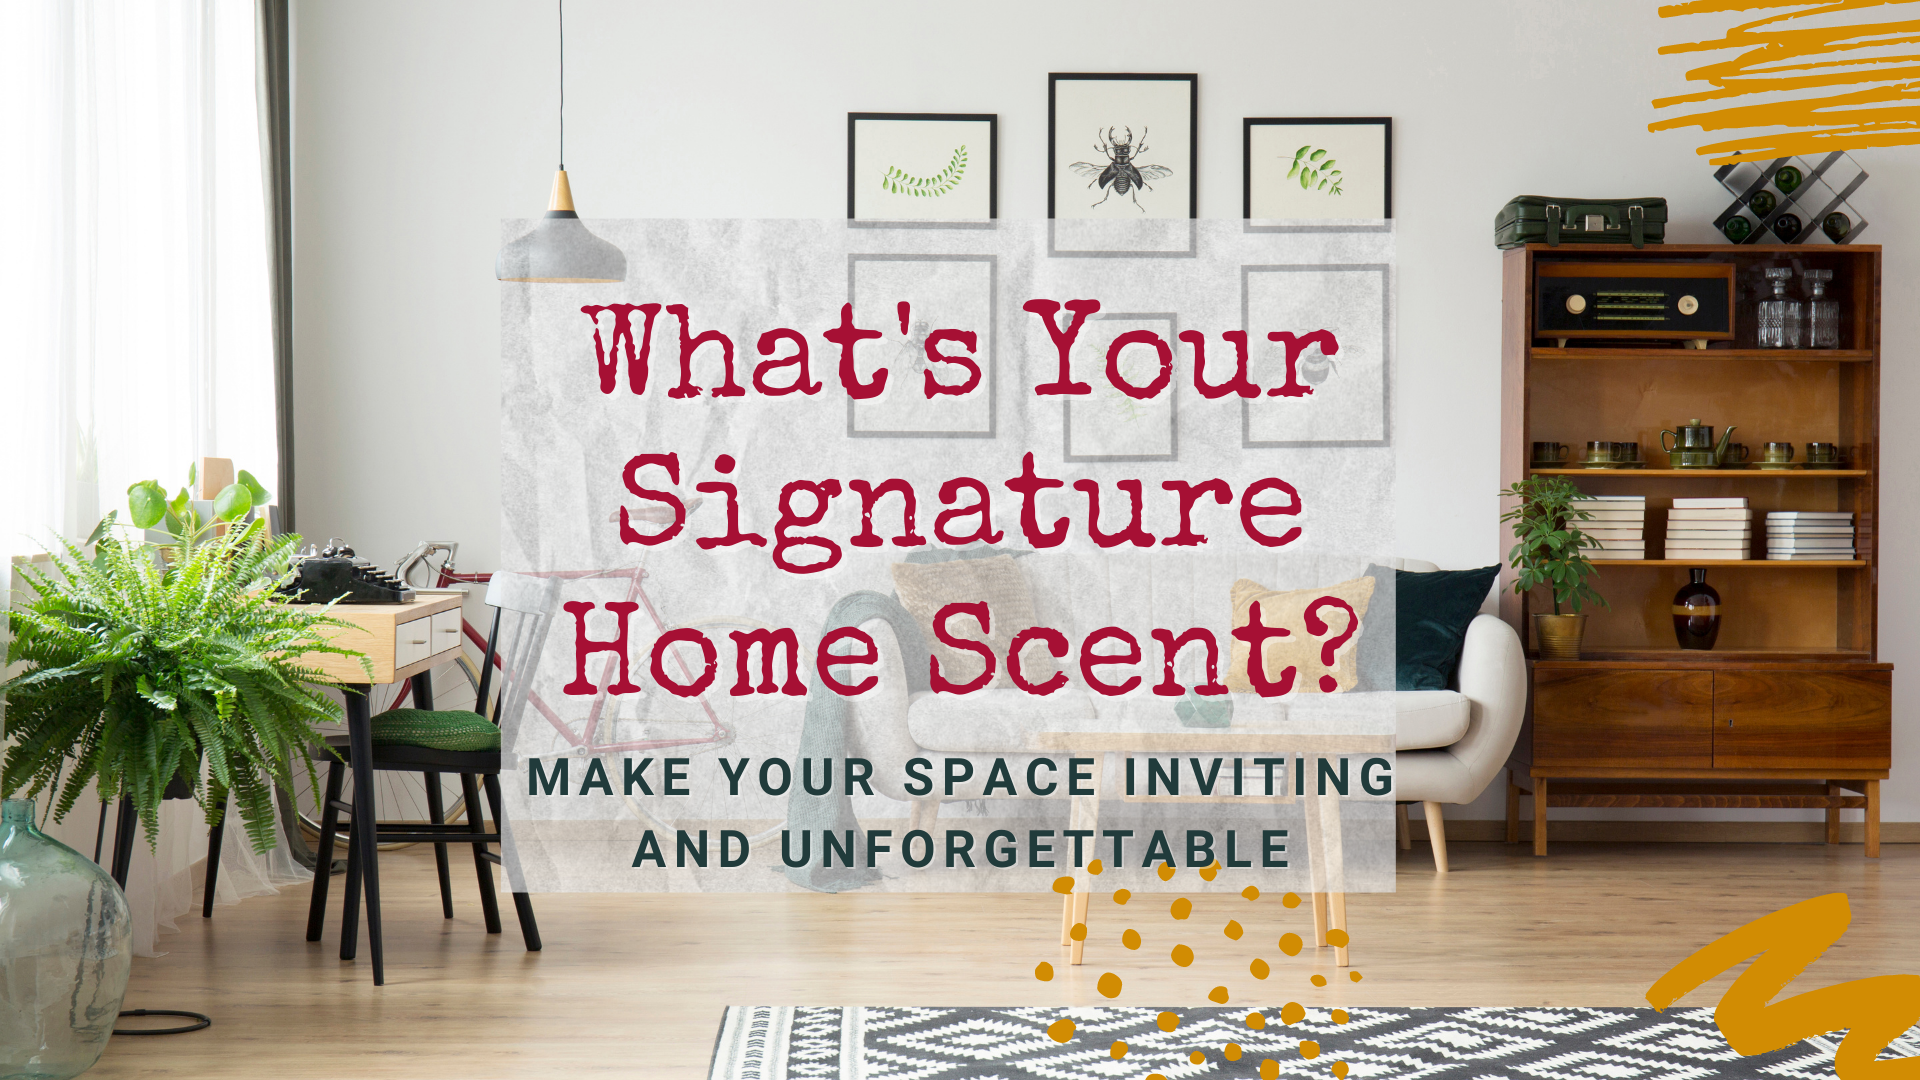 Signature Home Scent The Sage Lifestyle